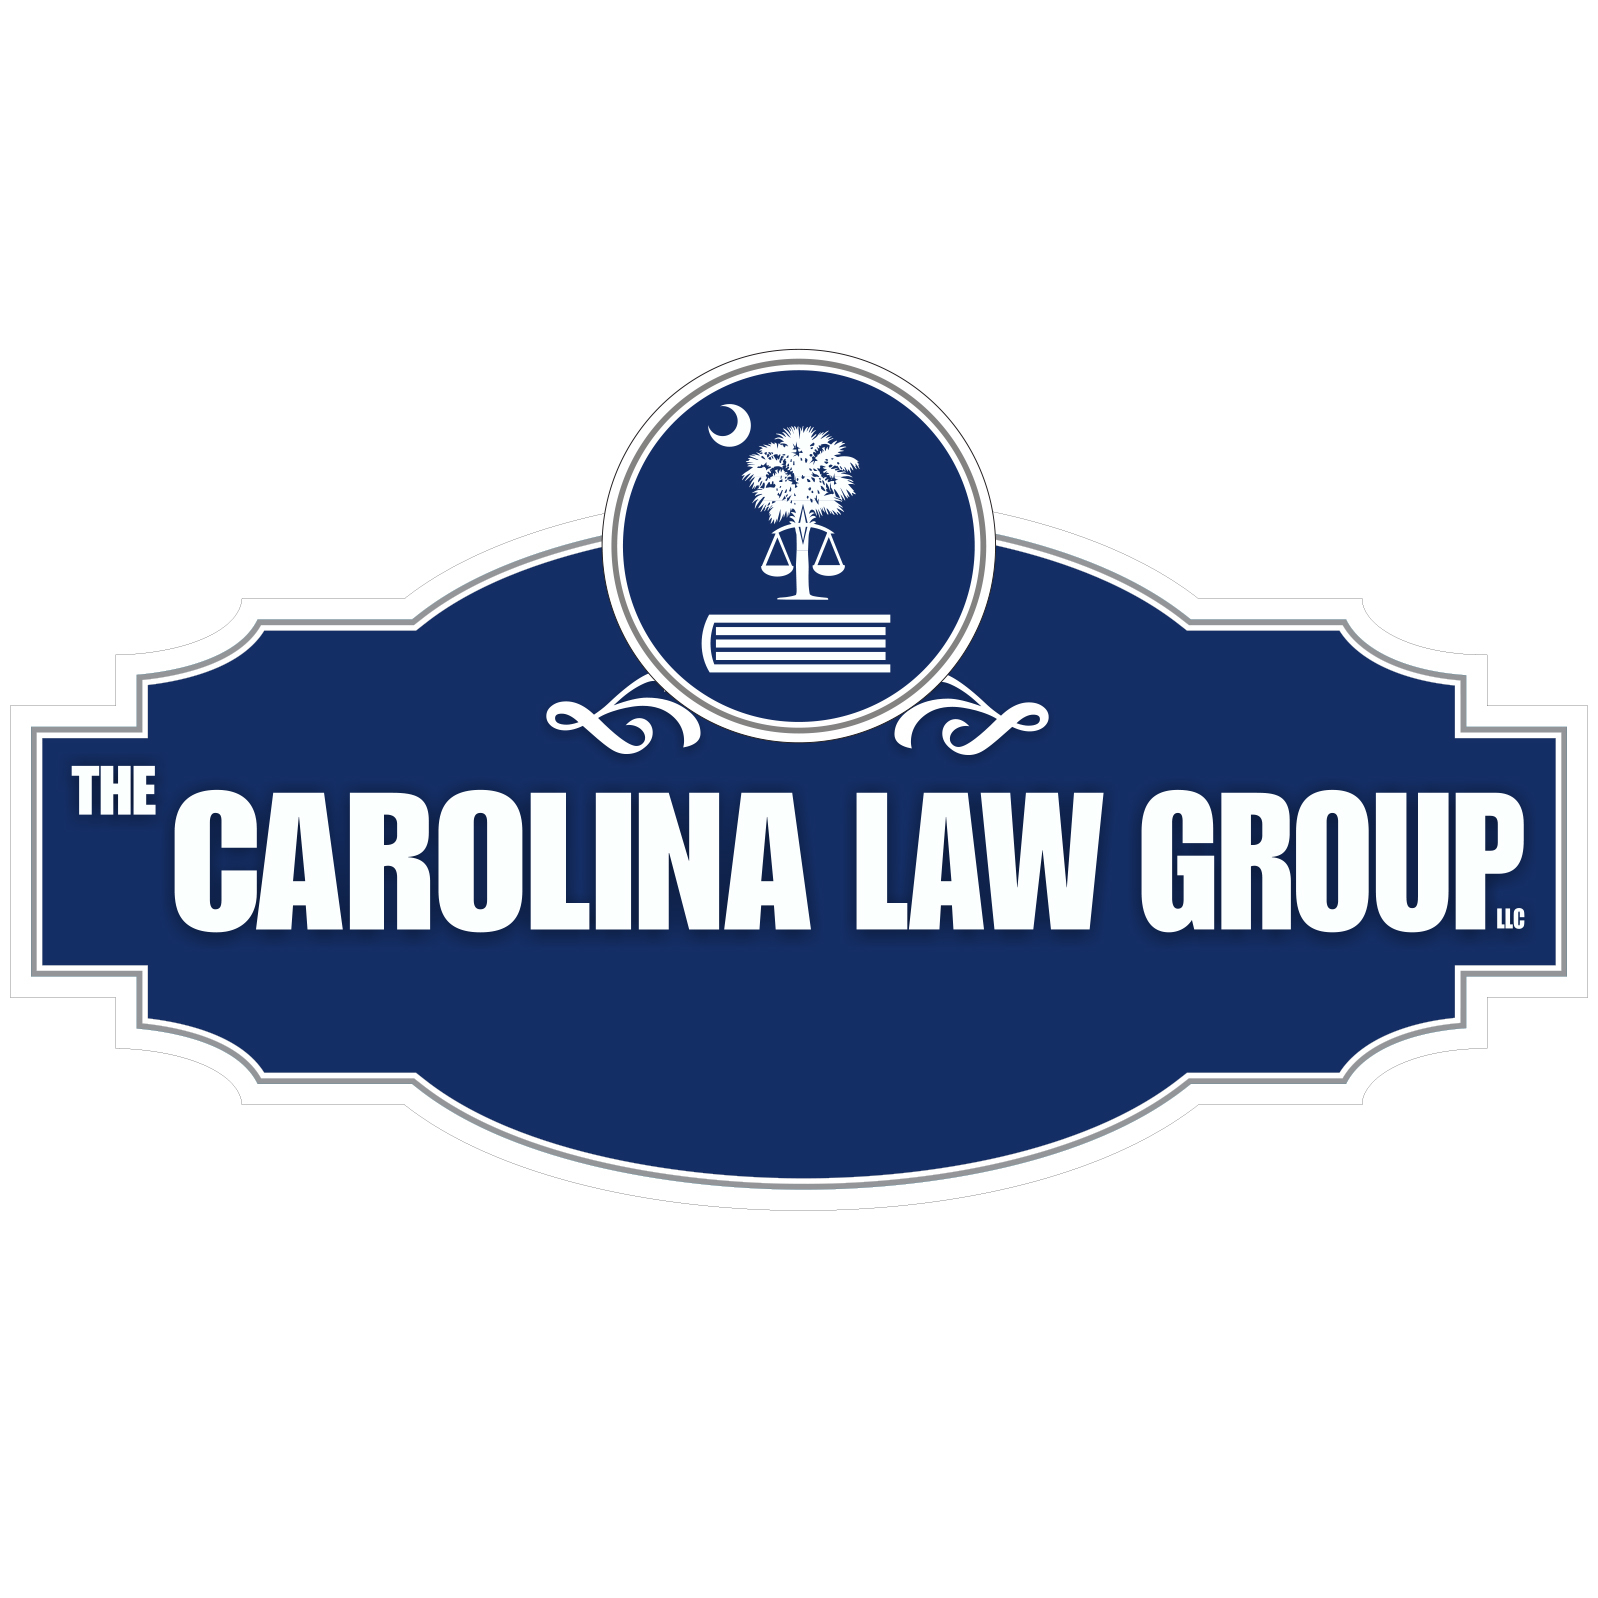 The Carolina Law Group